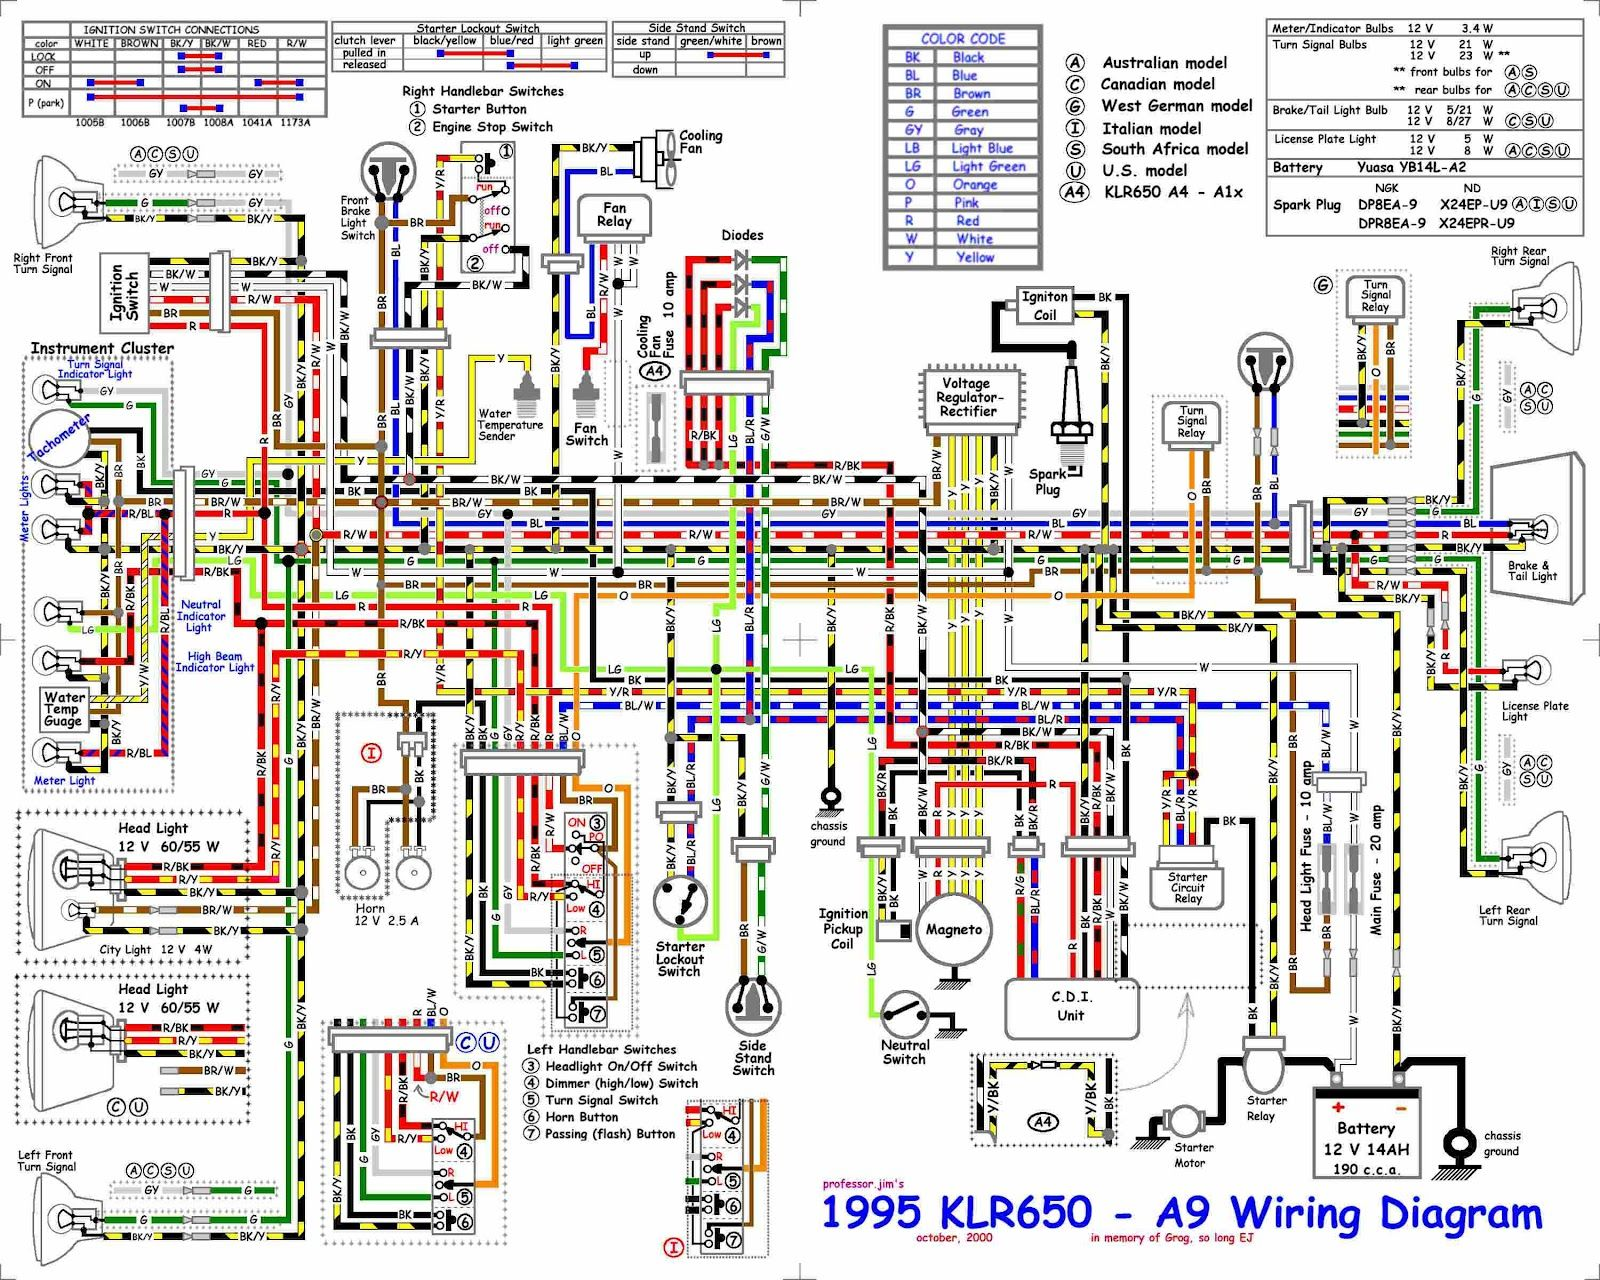 Pin By Chelsea On Klr 650 Electrical Wiring Diagram Klr 650 Electrical Diagram